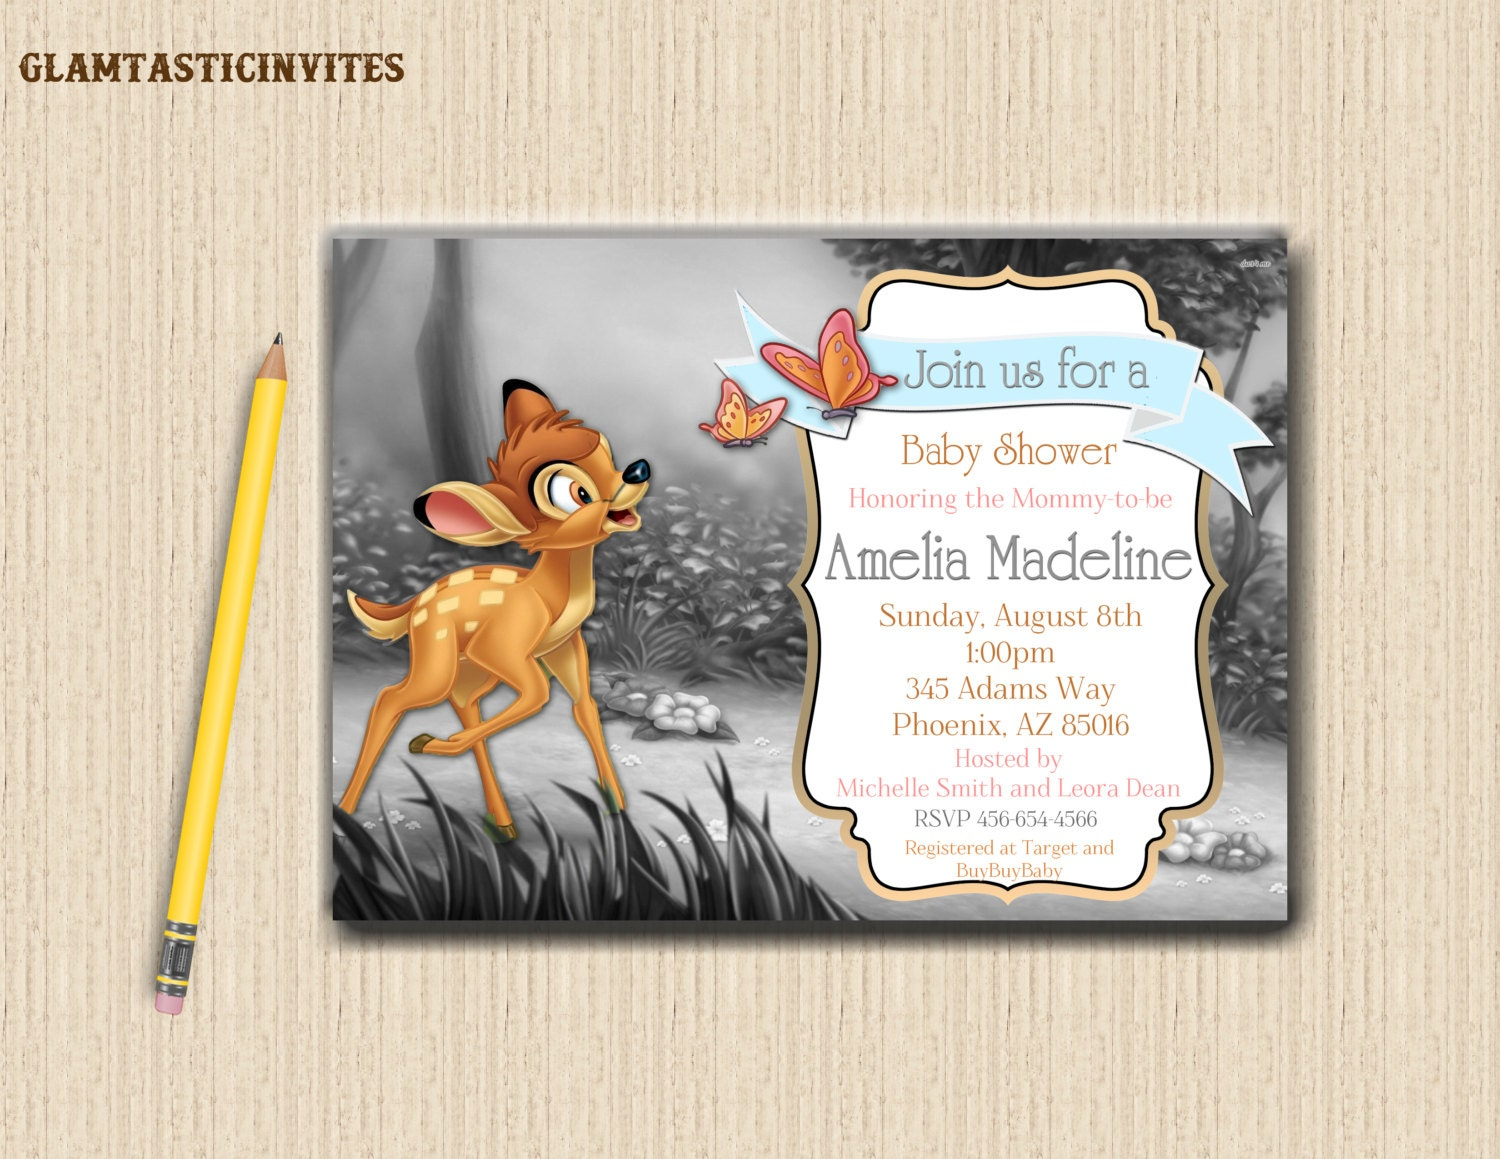 bambi baby shower invitation woods rustic deer fawn themed  etsy, Baby shower